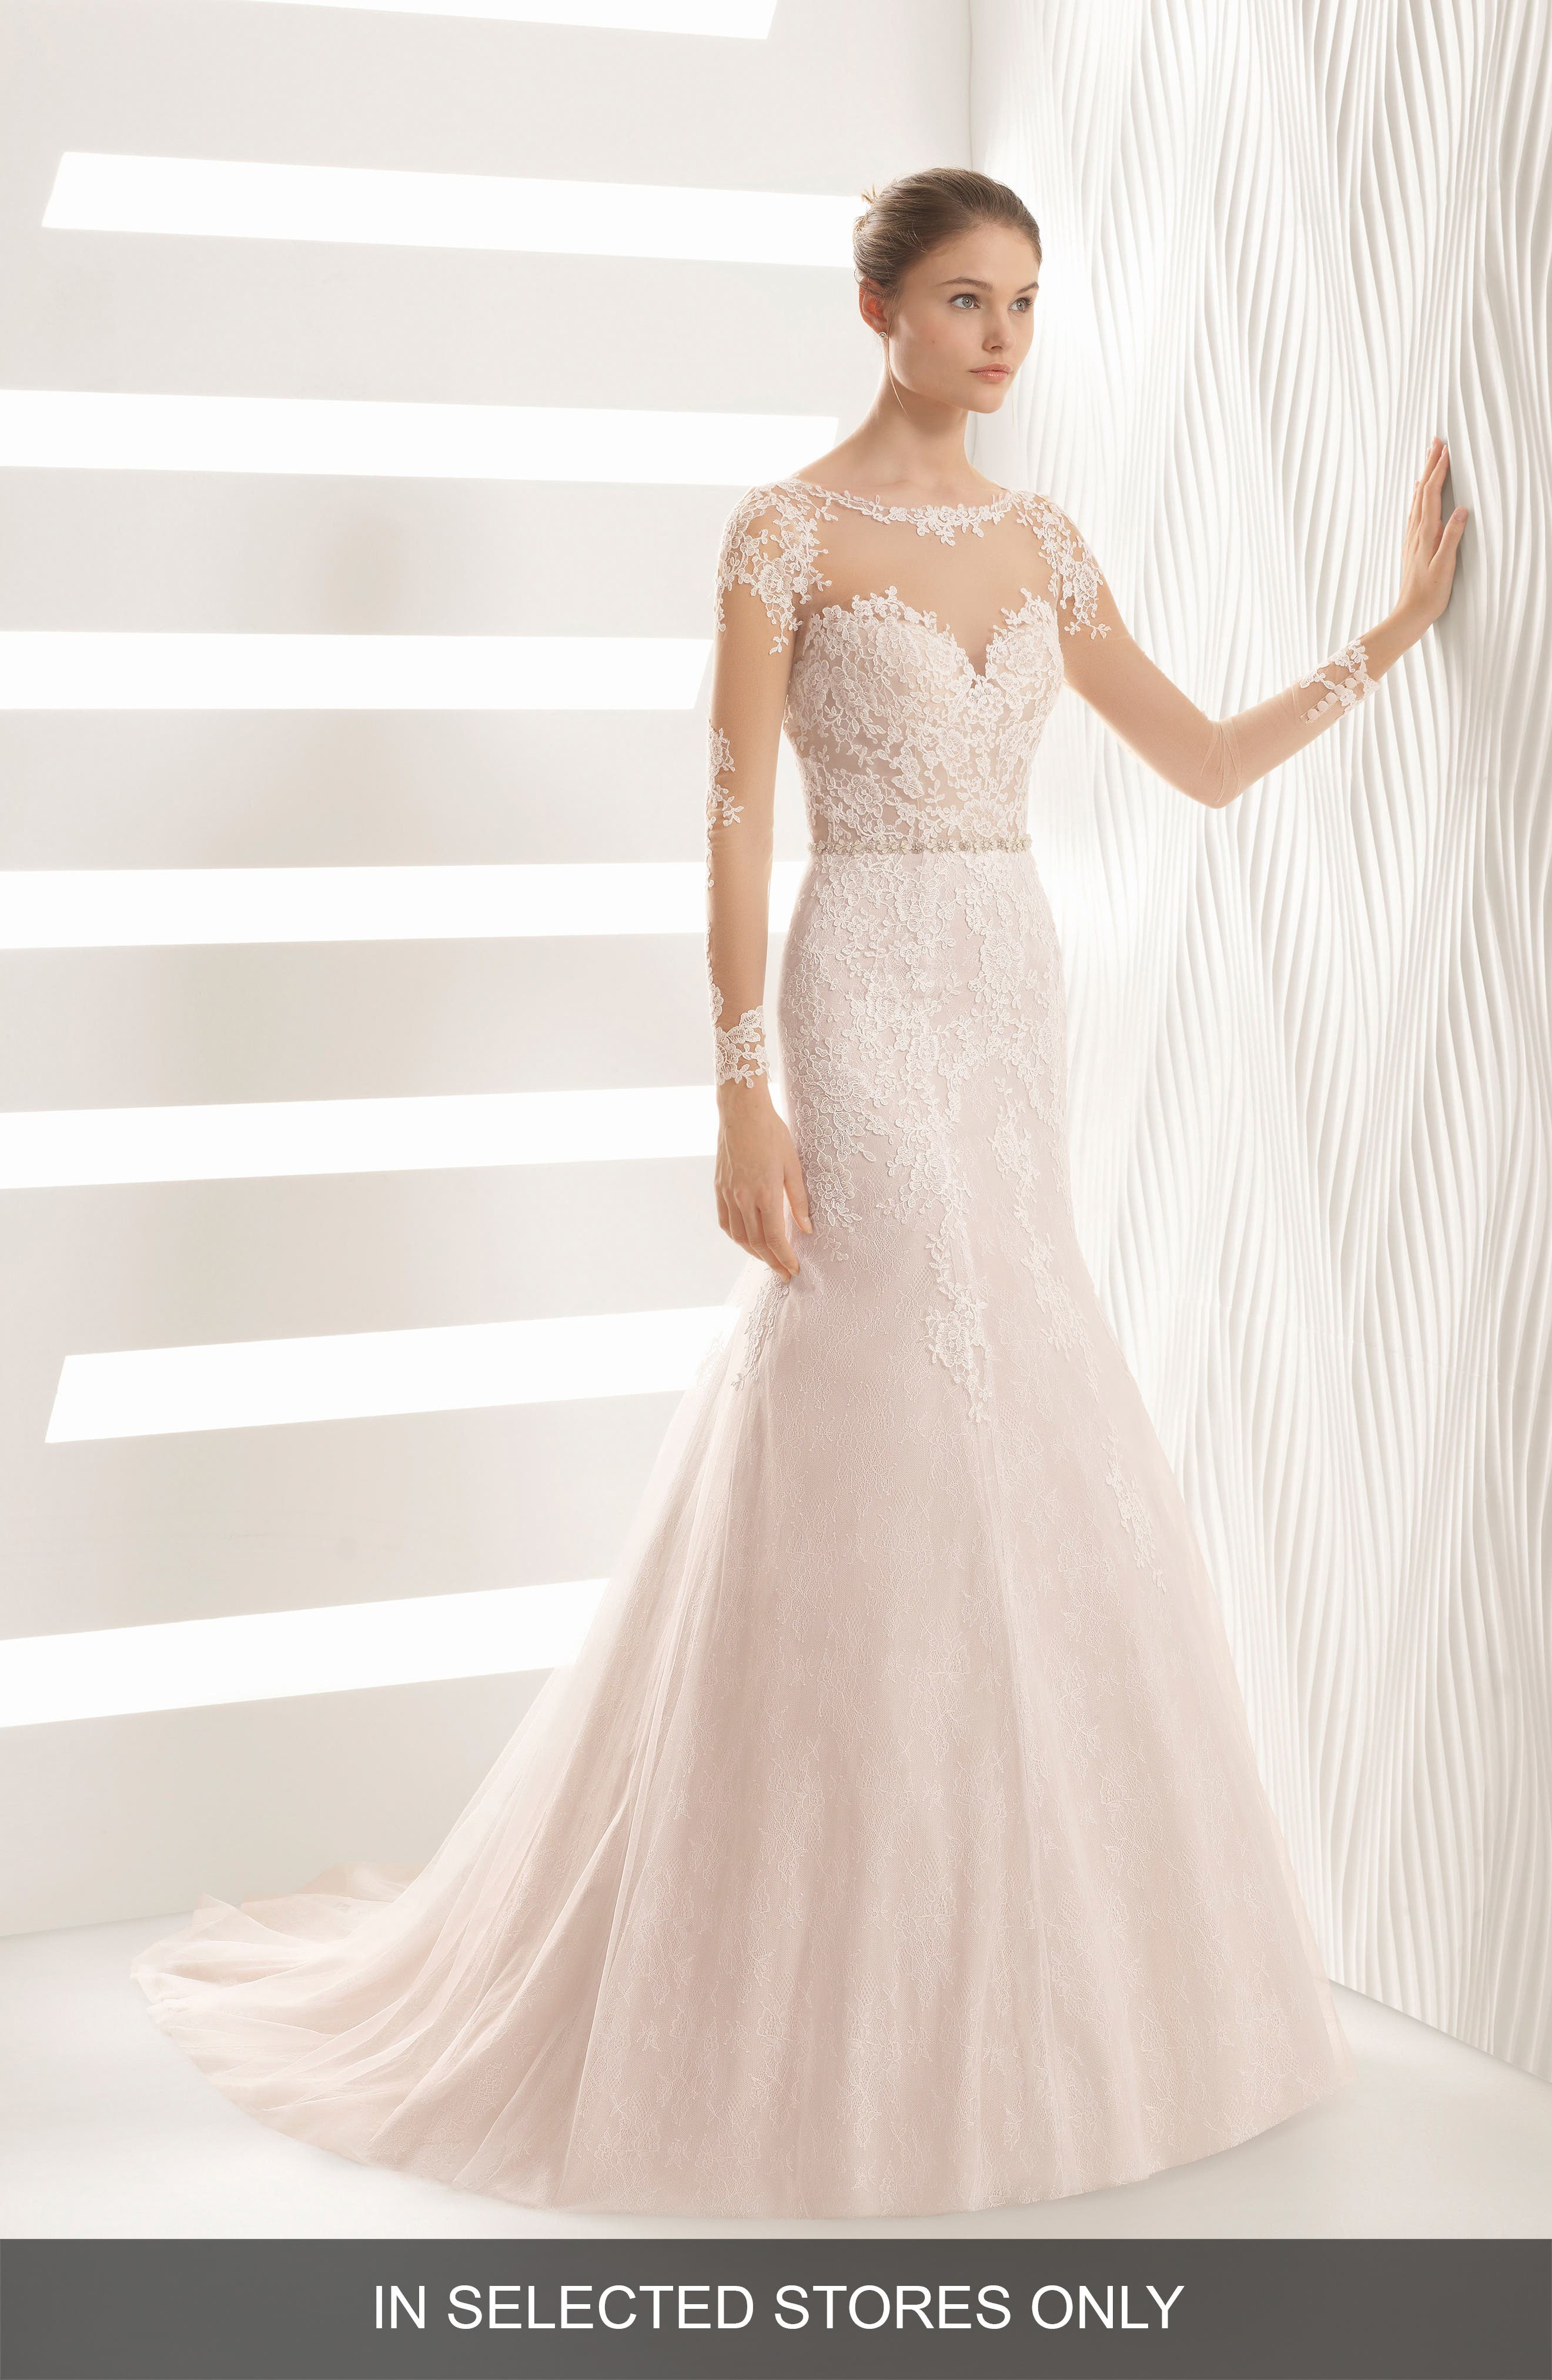 Amor Embroidered Illusion Lace Trumpet Gown,                             Main thumbnail 1, color,                             Nude